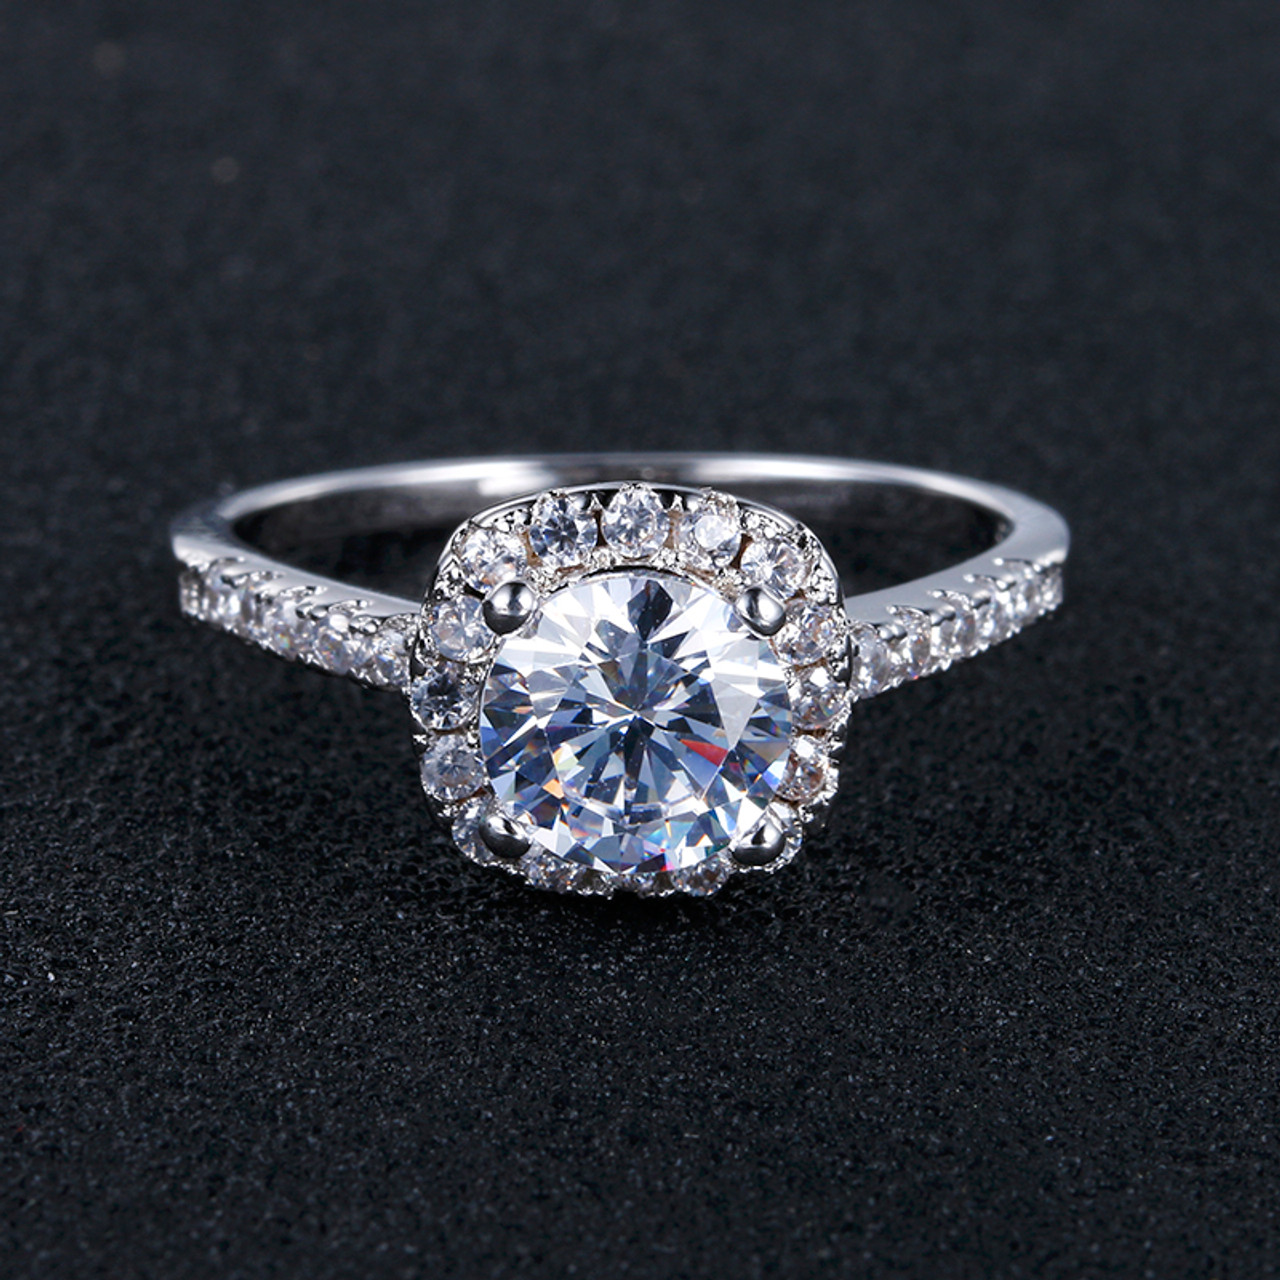 a16dab8460 ... CC Jewelry Sterling-silver-jewelry Square Ring Engagement Wedding Rings  for Women Vintage Anillo ...